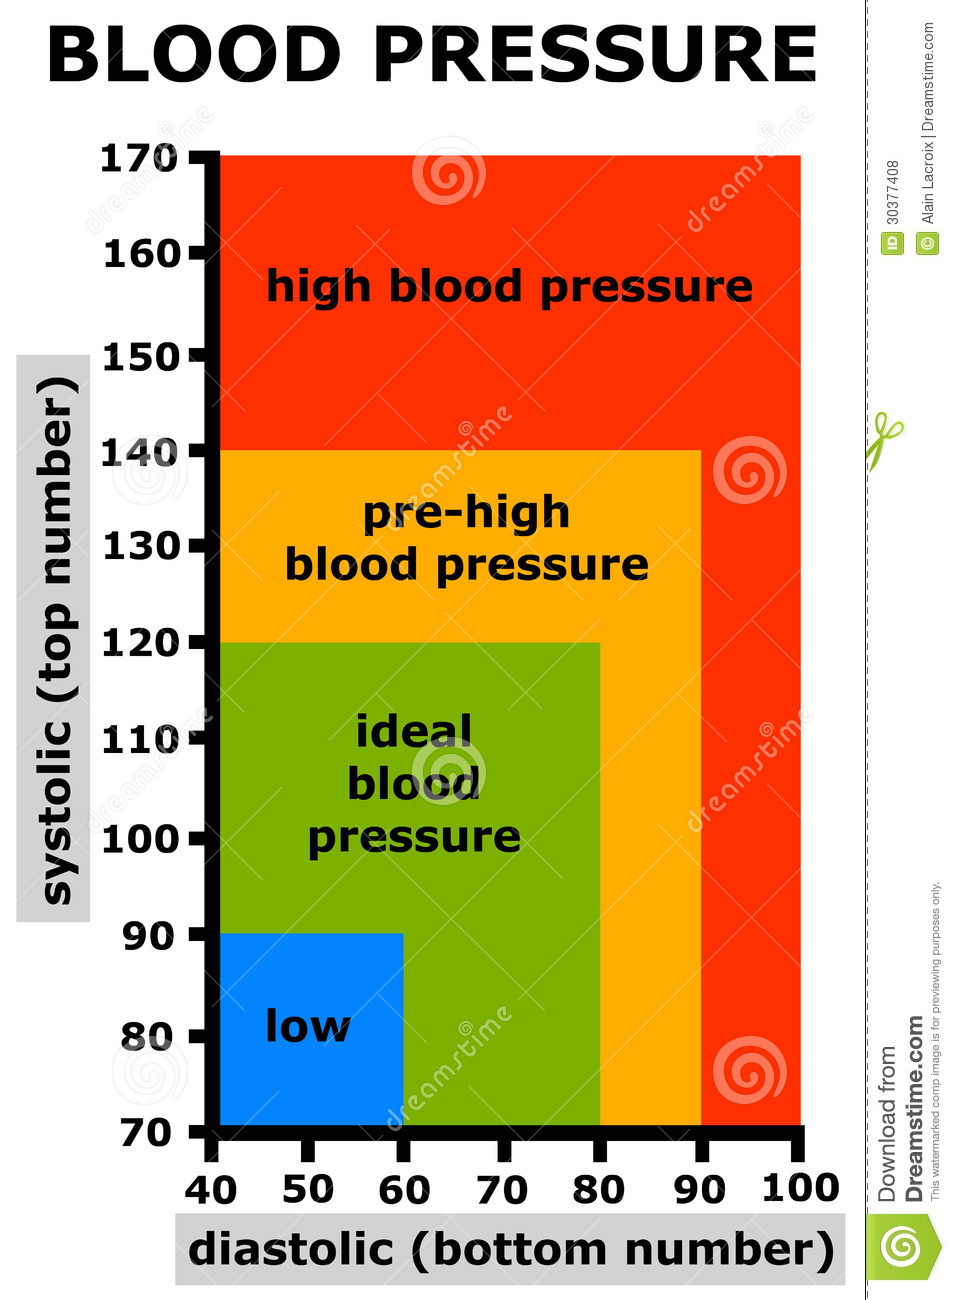 Blood Pressure Royalty Free Stock Photos Image 30377408